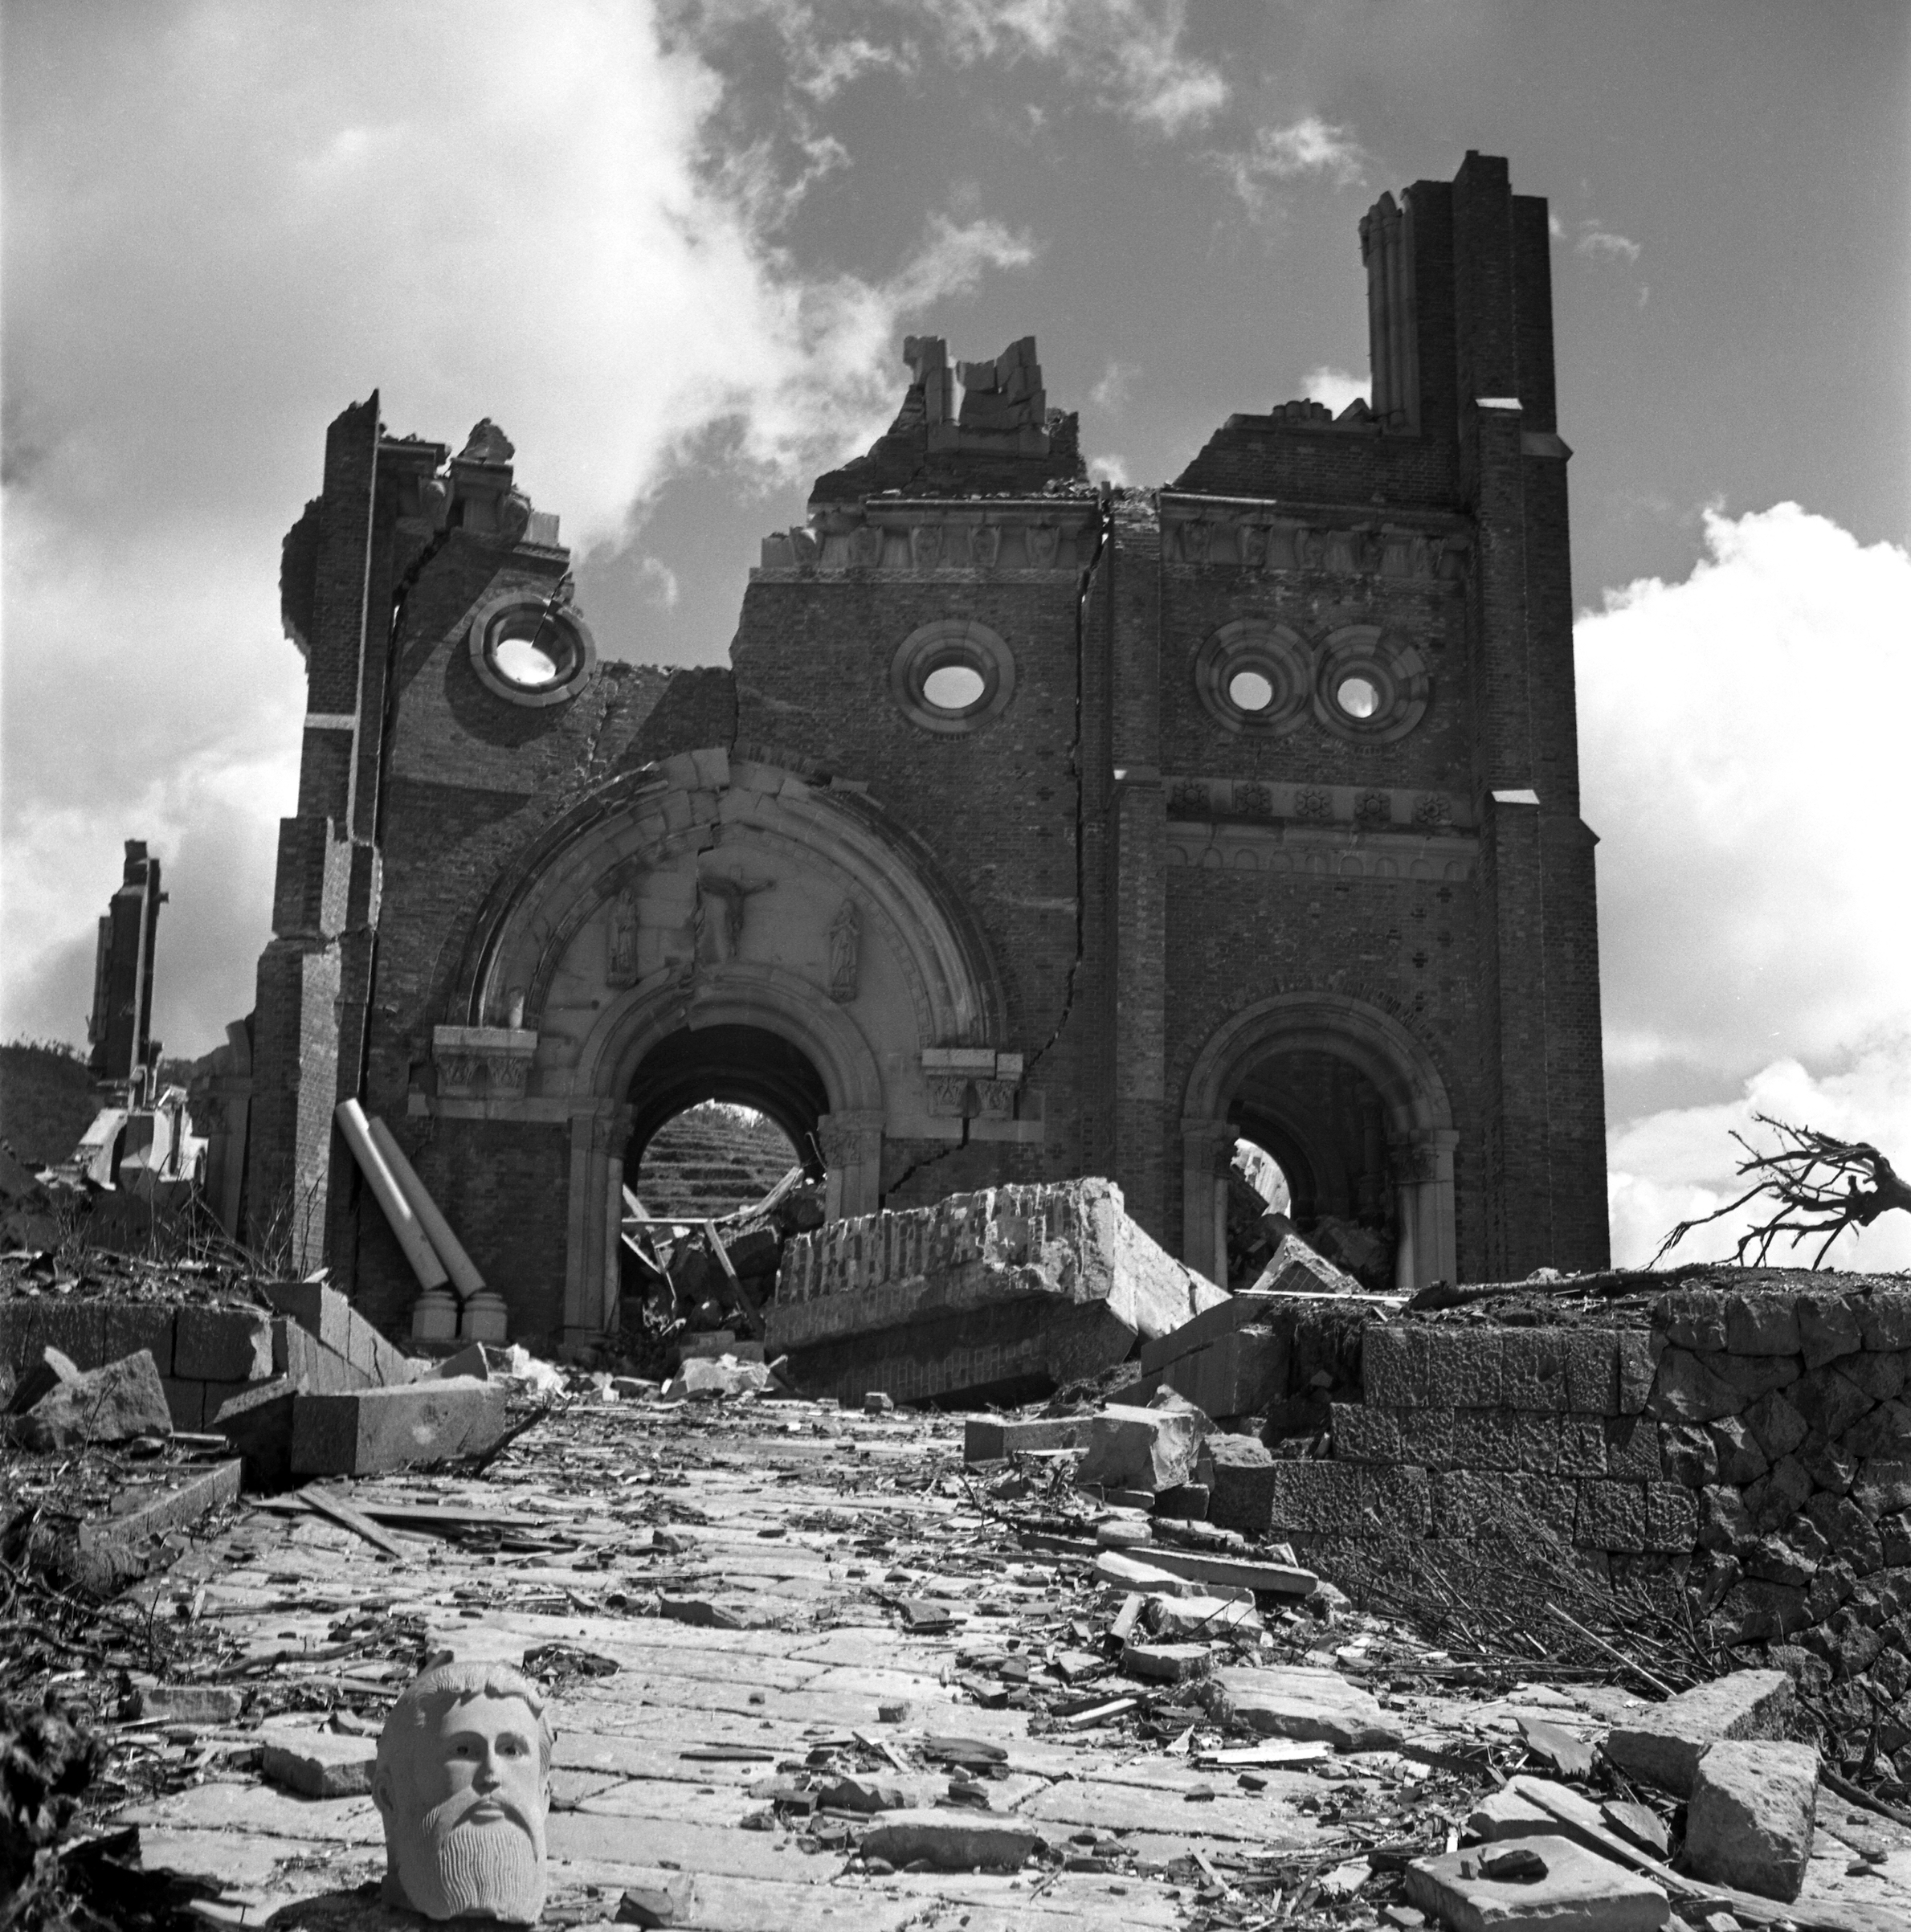 Urakami Cathedral stands in the ruins and destruction after the atomic bomb fell on Nagasaki